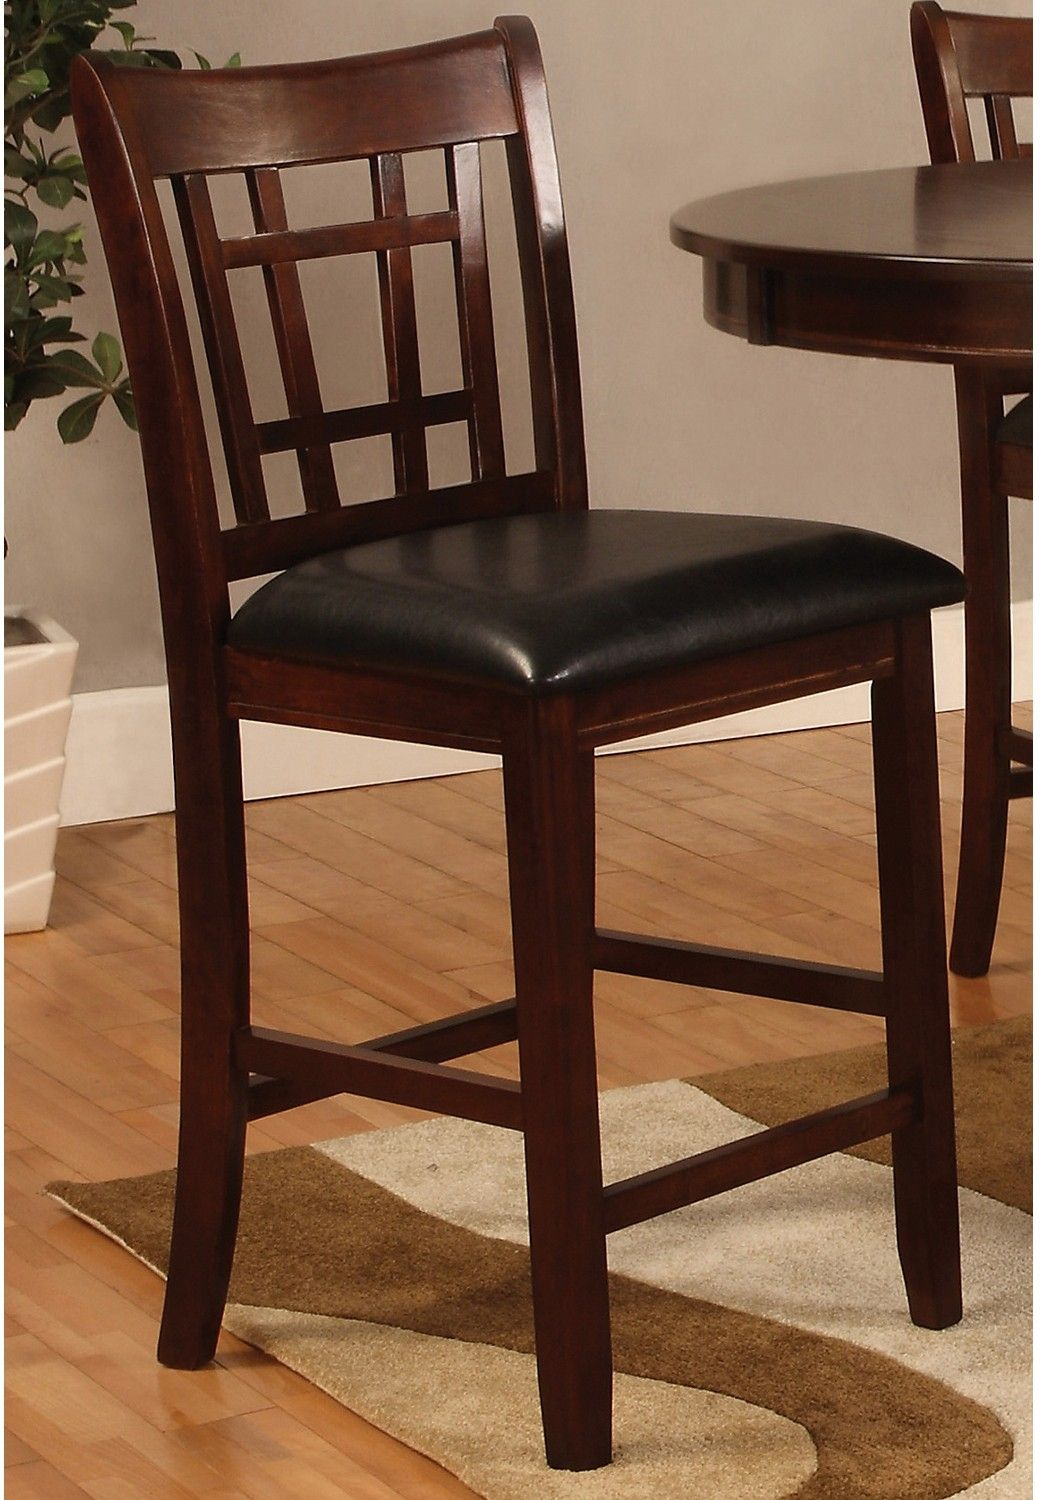 Dalton Chocolate Counter Height Chair The Brick